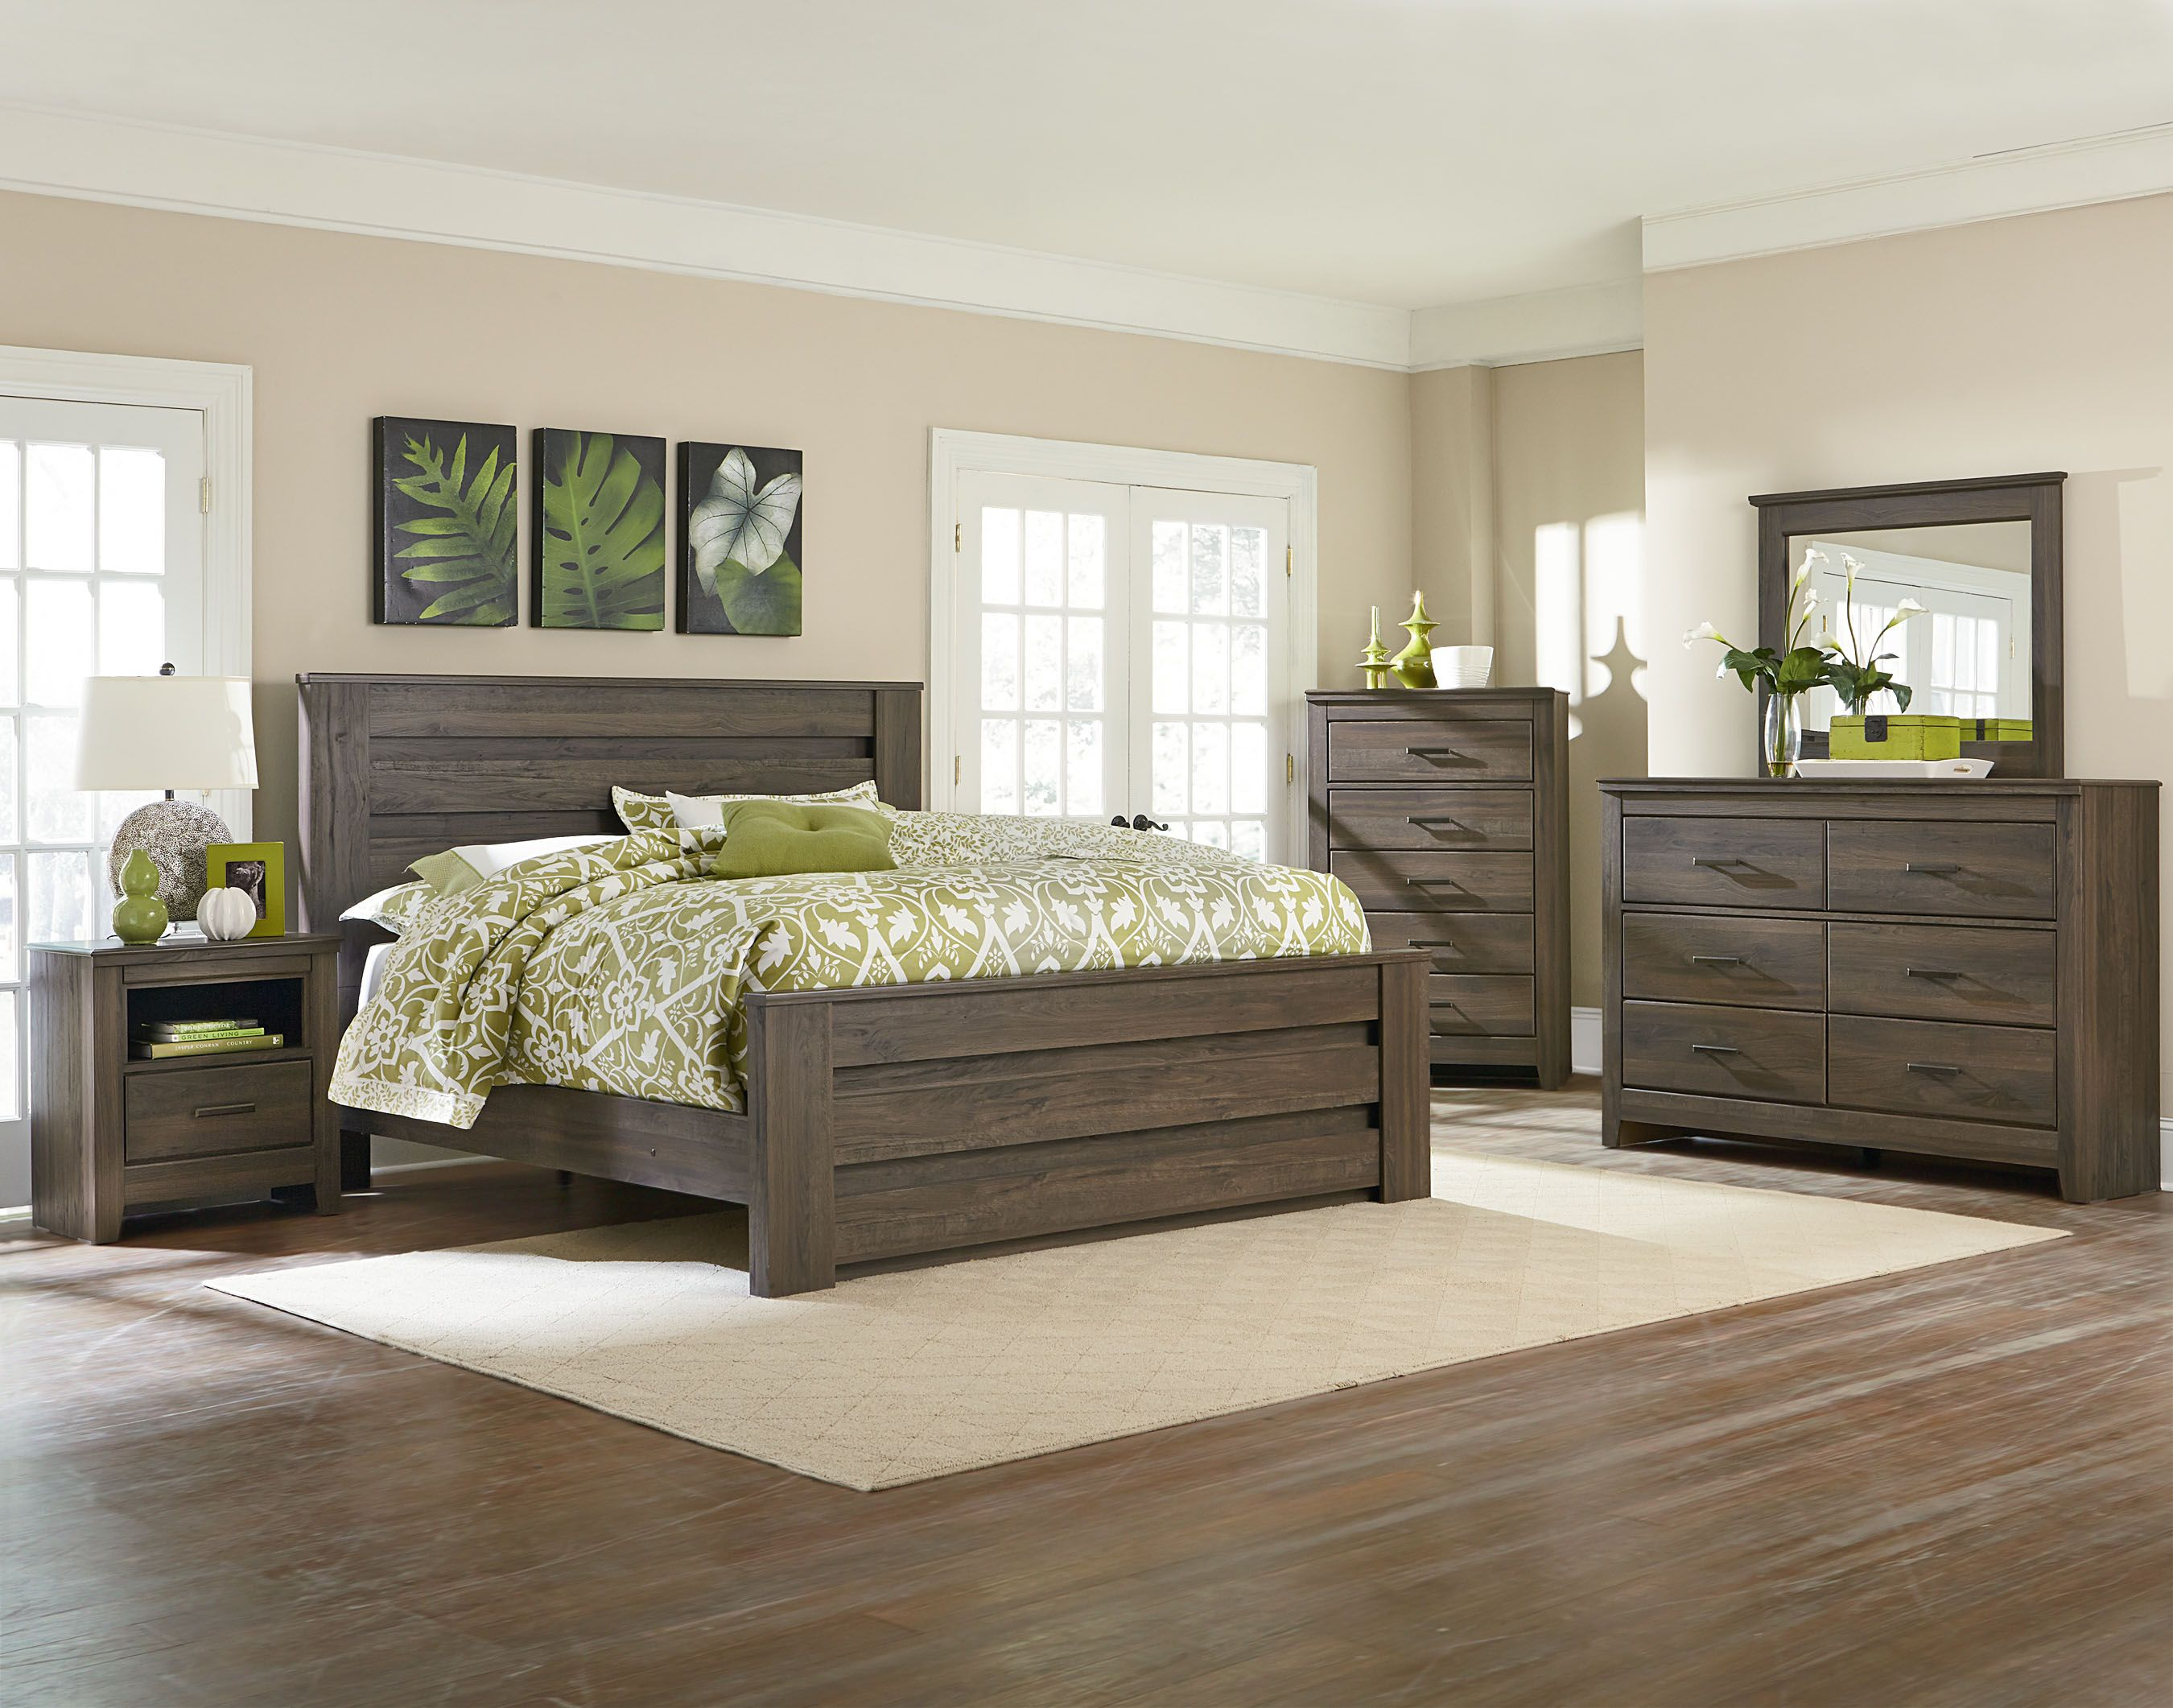 Charmant The Hayward Mansion Bedroom Set Is A Hefty Proportioned 3 Or 5 Piece  Furniture Set That Is Finished In A Dark Brown Oak Weathered Style.